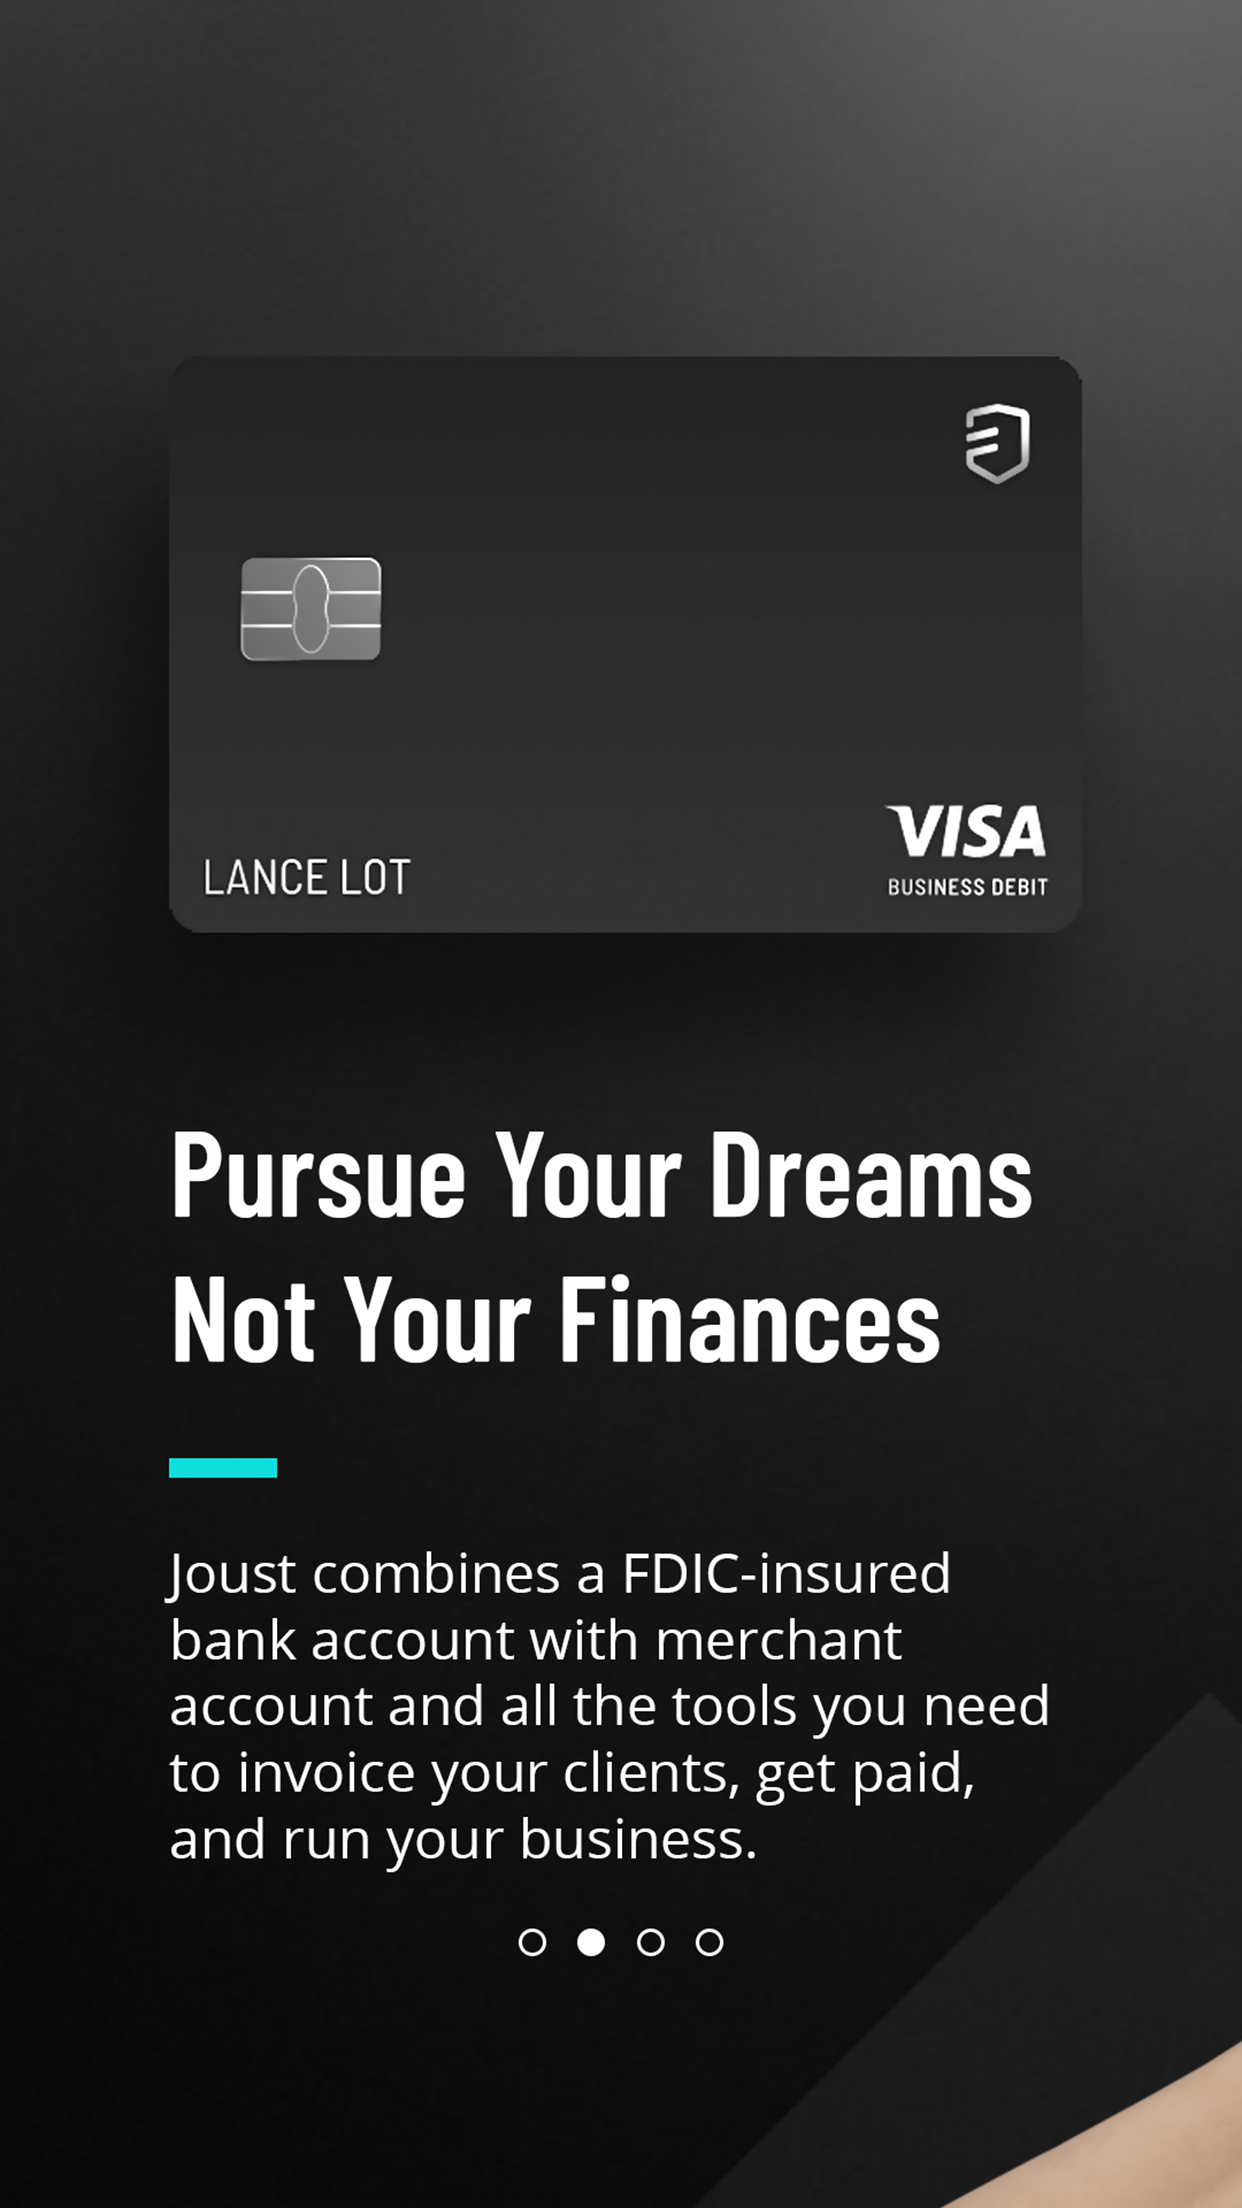 Joust raises $2 6M in seed funding to expand banking platform